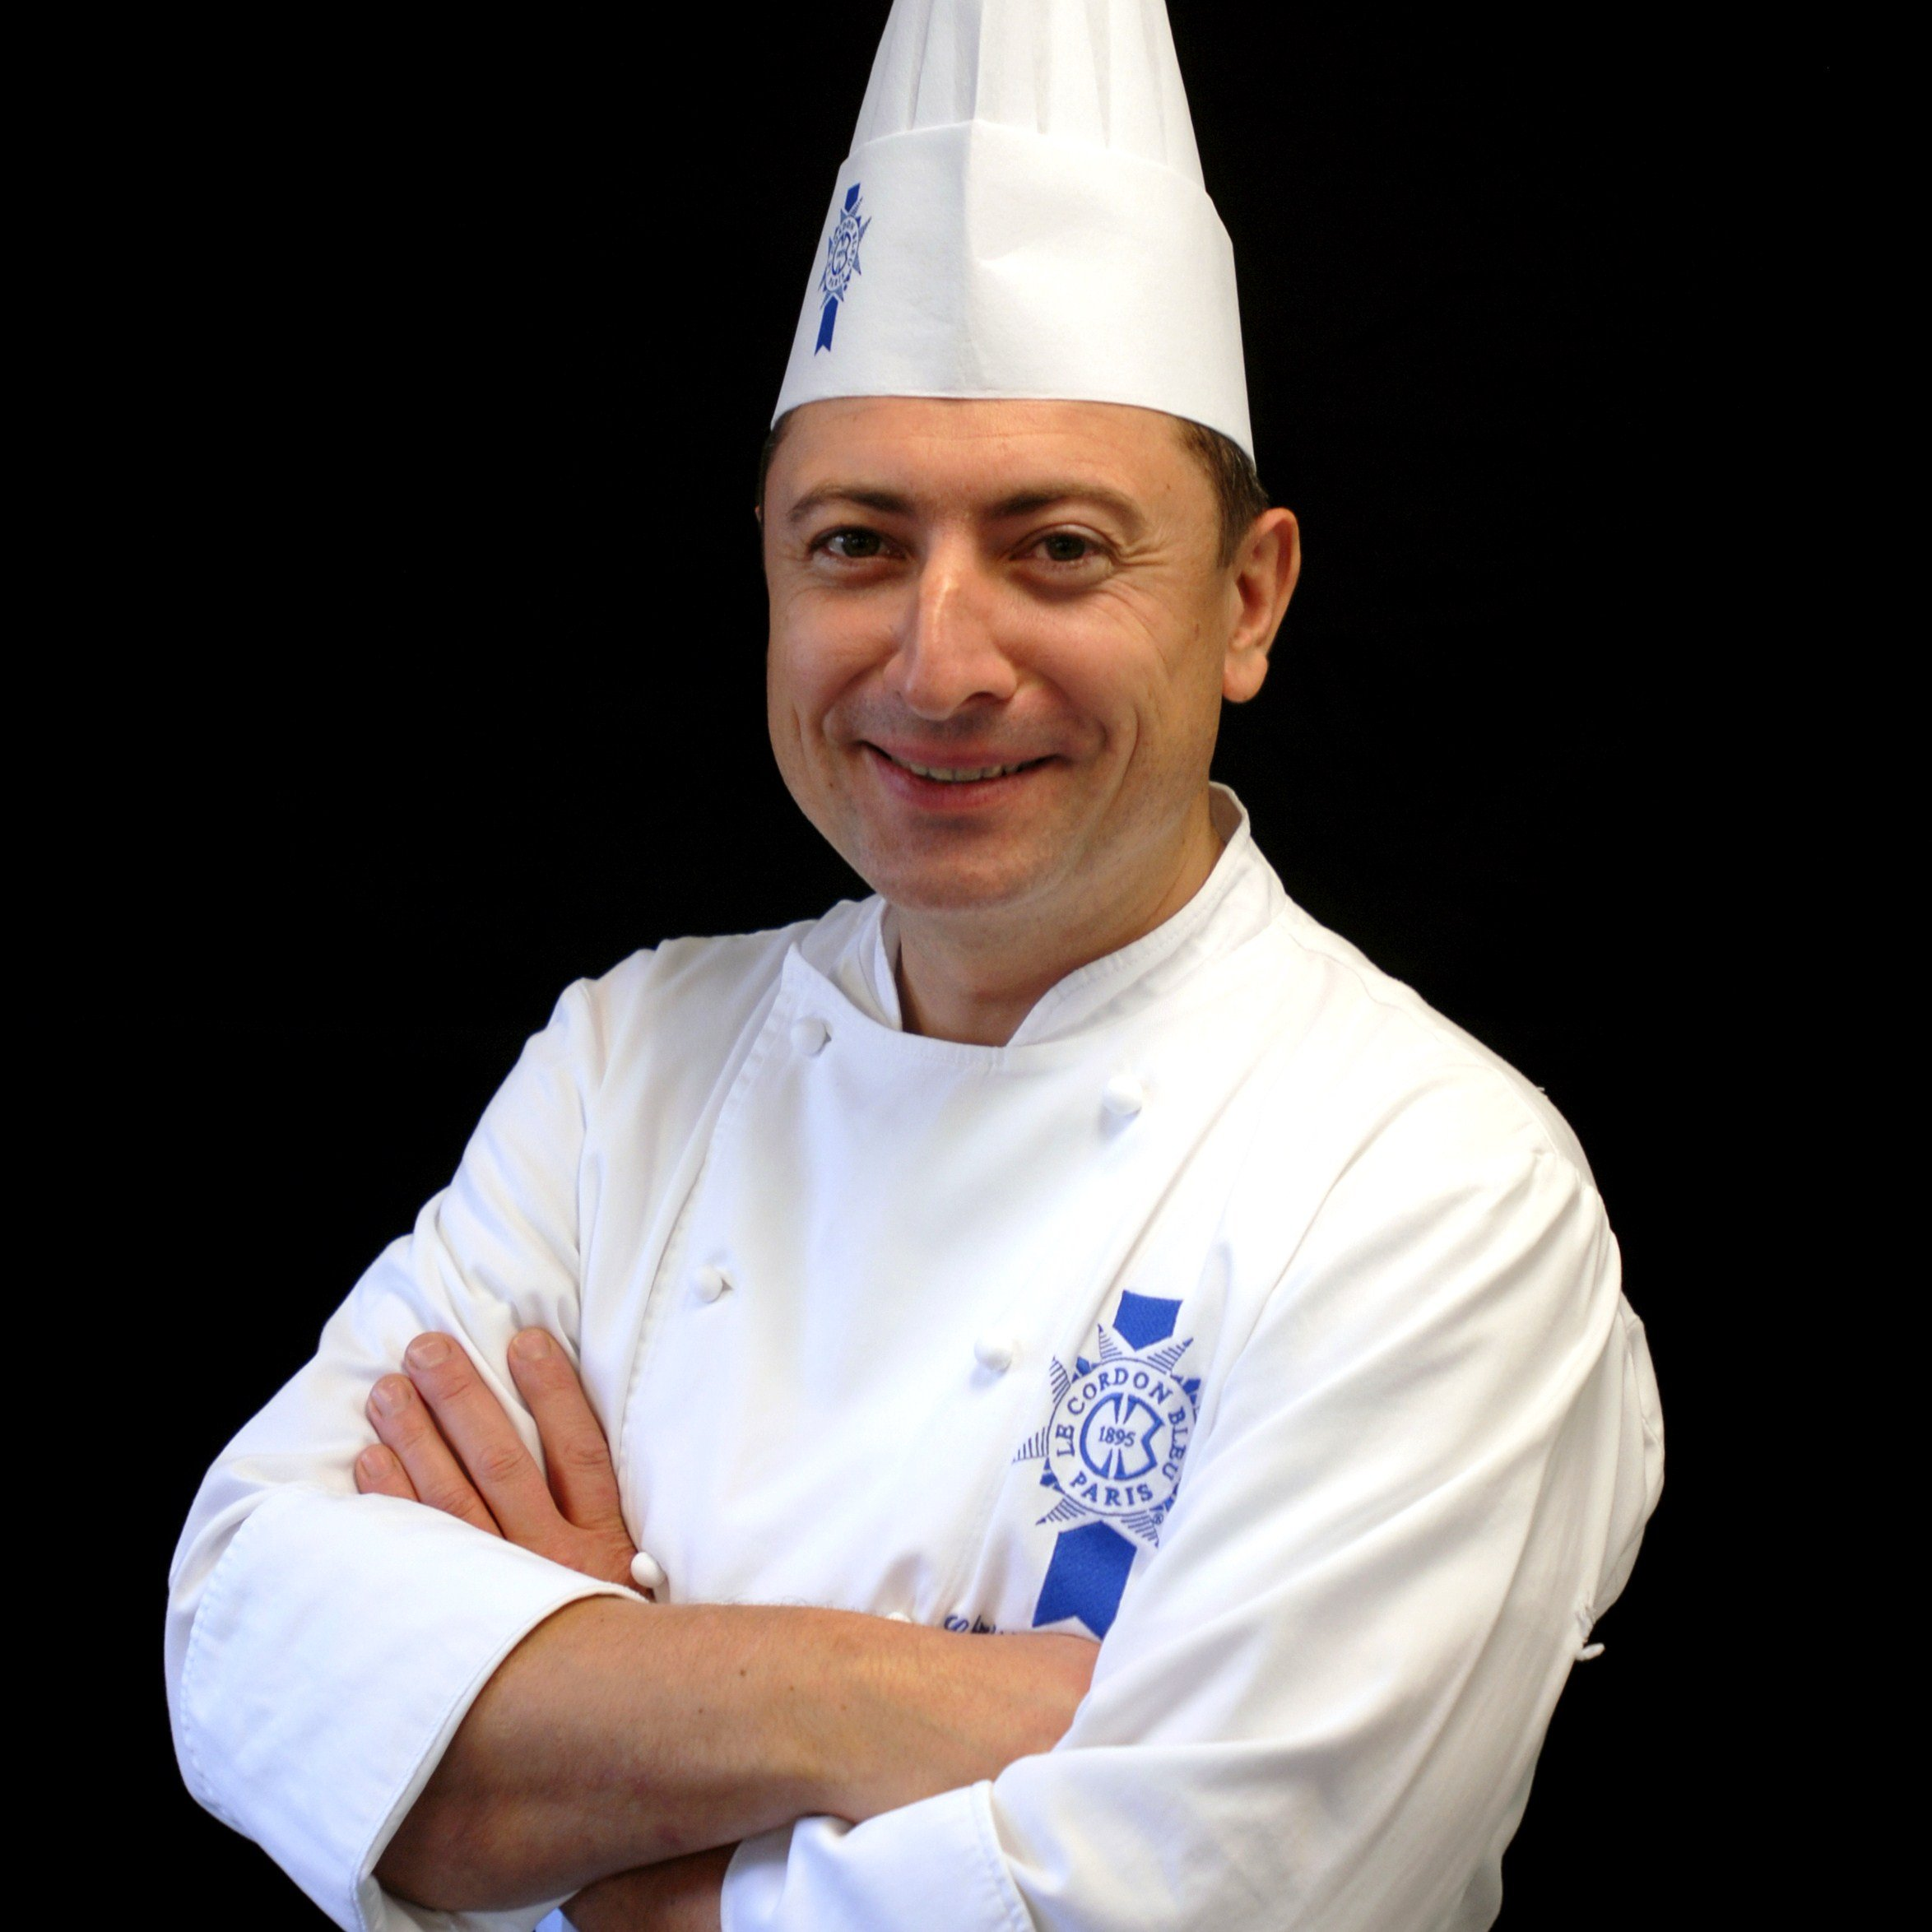 Franck Jeadon - Master Chef at Le Cordon Bleu London